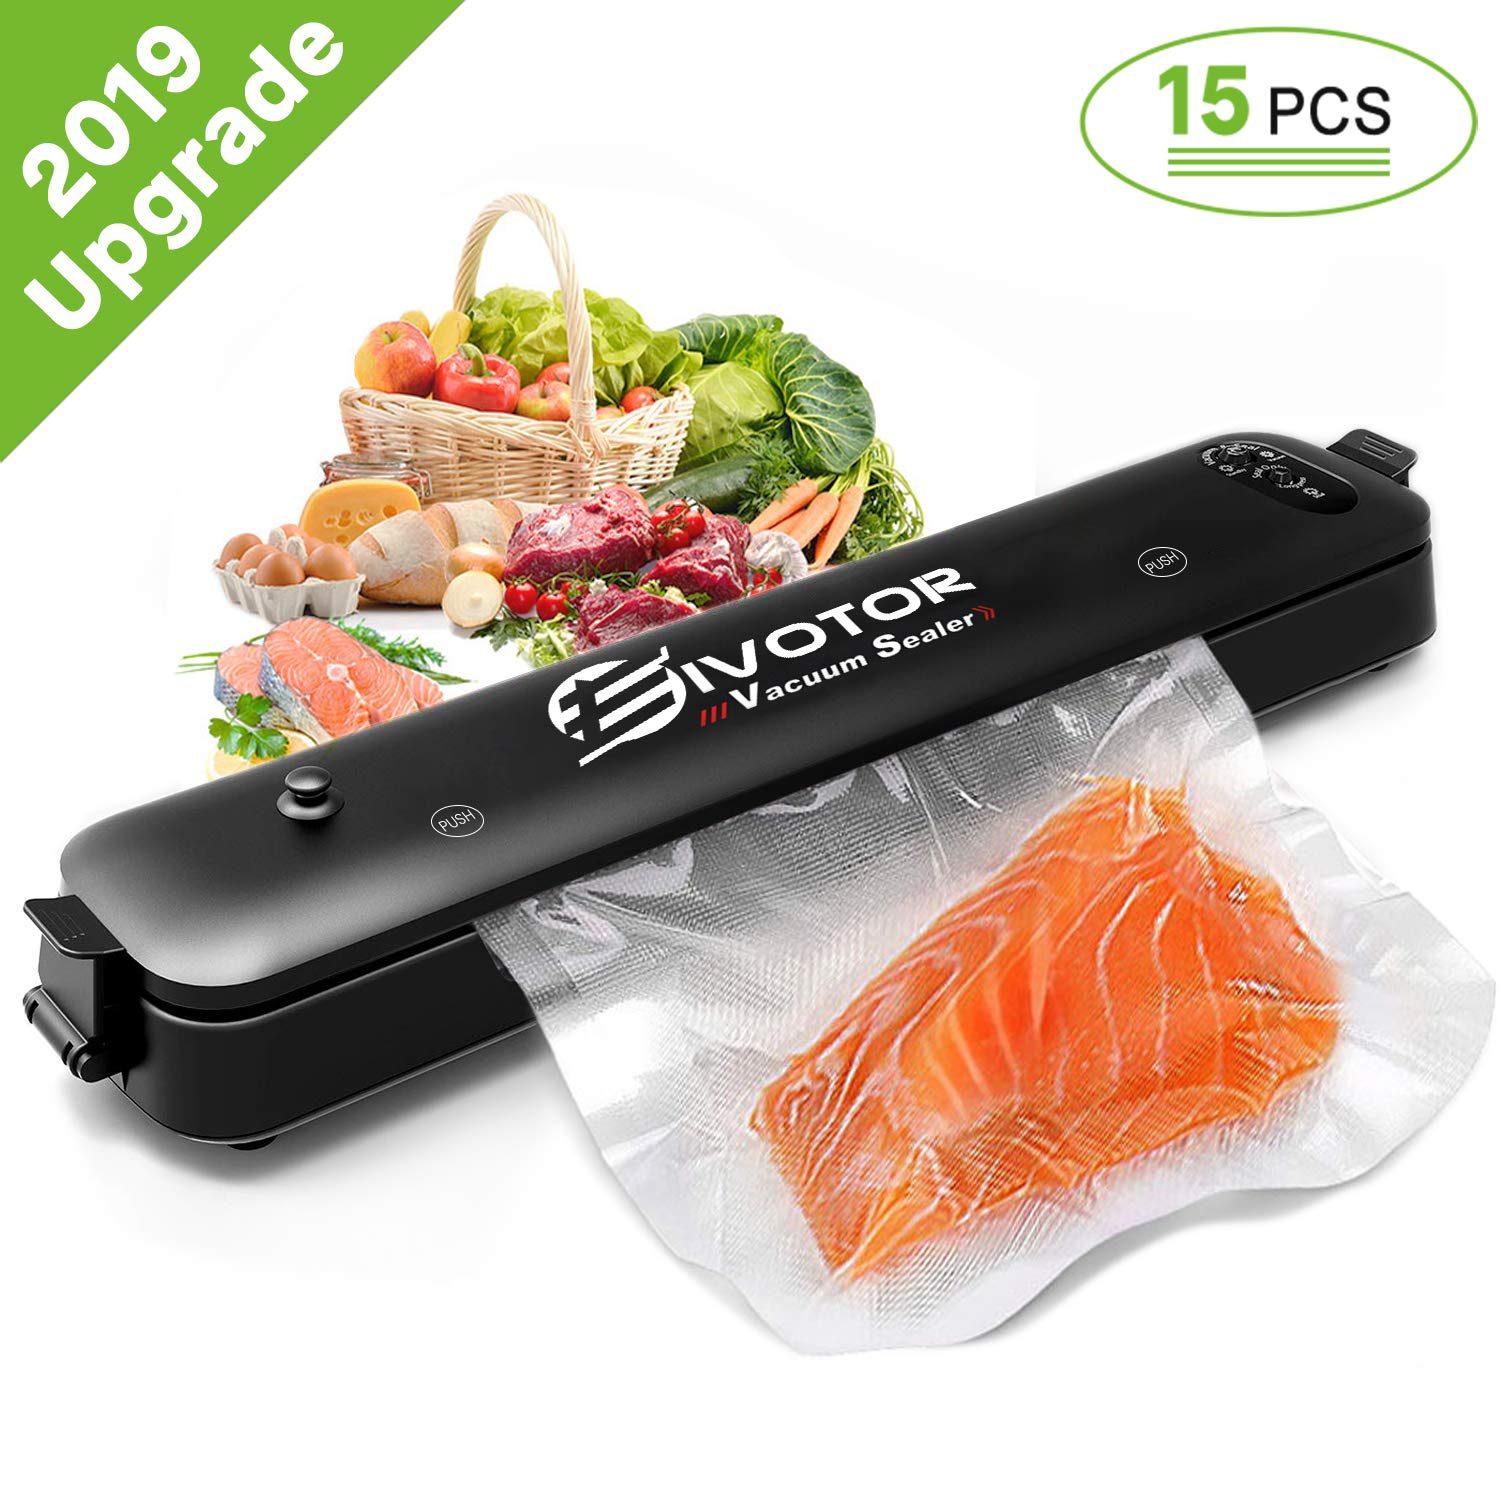 Food Vacuum Sealer Machine, EIVOTOR Sous Vide Vacuum Sealer Machine Automatic Multifunction Vacuum Sealing System for Food Savers, Dry & Moist Sealing Mode, Led Lights, with 15pcs Vacuum Sealer Bags by EIVOTOR